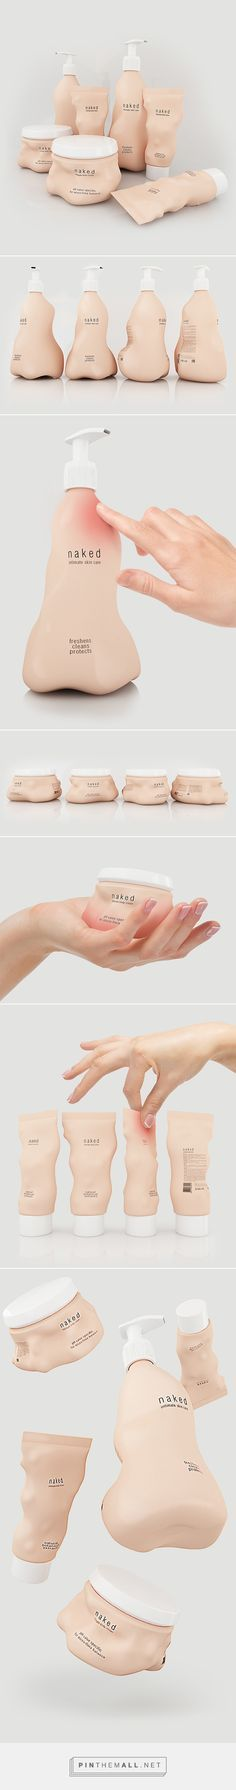 Intimate Care Products Package Concept designed by Stas Neretin http://behance.net?utm_content=buffer04cfe&utm_medium=social&utm_source=pinterest.com&utm_campaign=buffer  http://arcreactions.com/services/seo/?utm_content=bufferb4213&utm_medium=social&utm_source=pinterest.com&utm_campaign=buffer